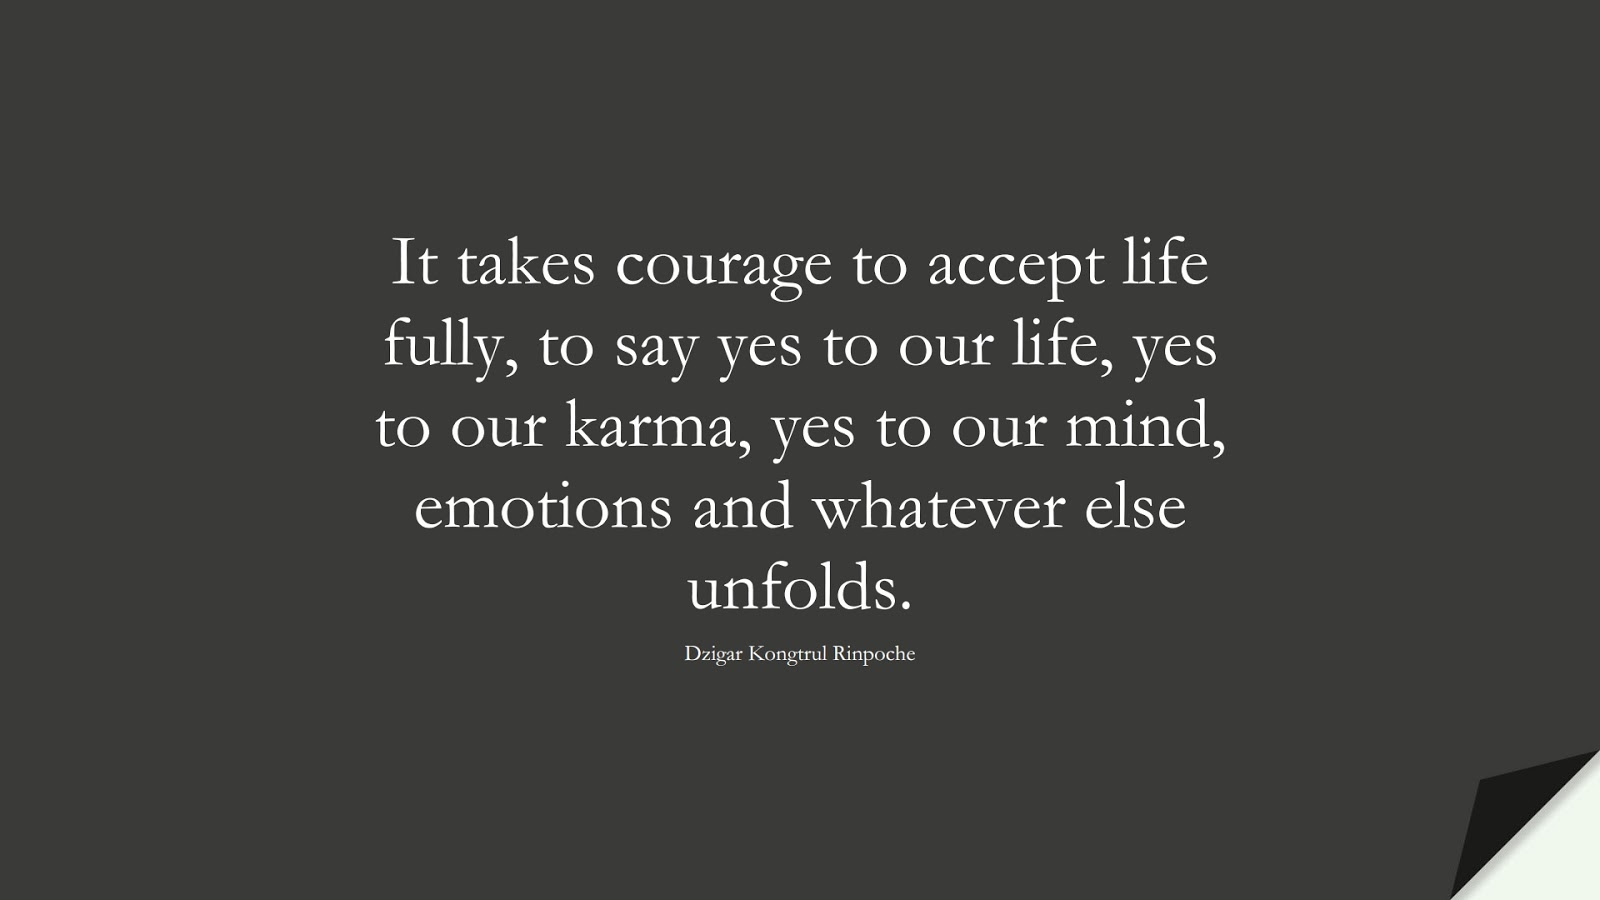 It takes courage to accept life fully, to say yes to our life, yes to our karma, yes to our mind, emotions and whatever else unfolds. (Dzigar Kongtrul Rinpoche);  #StoicQuotes